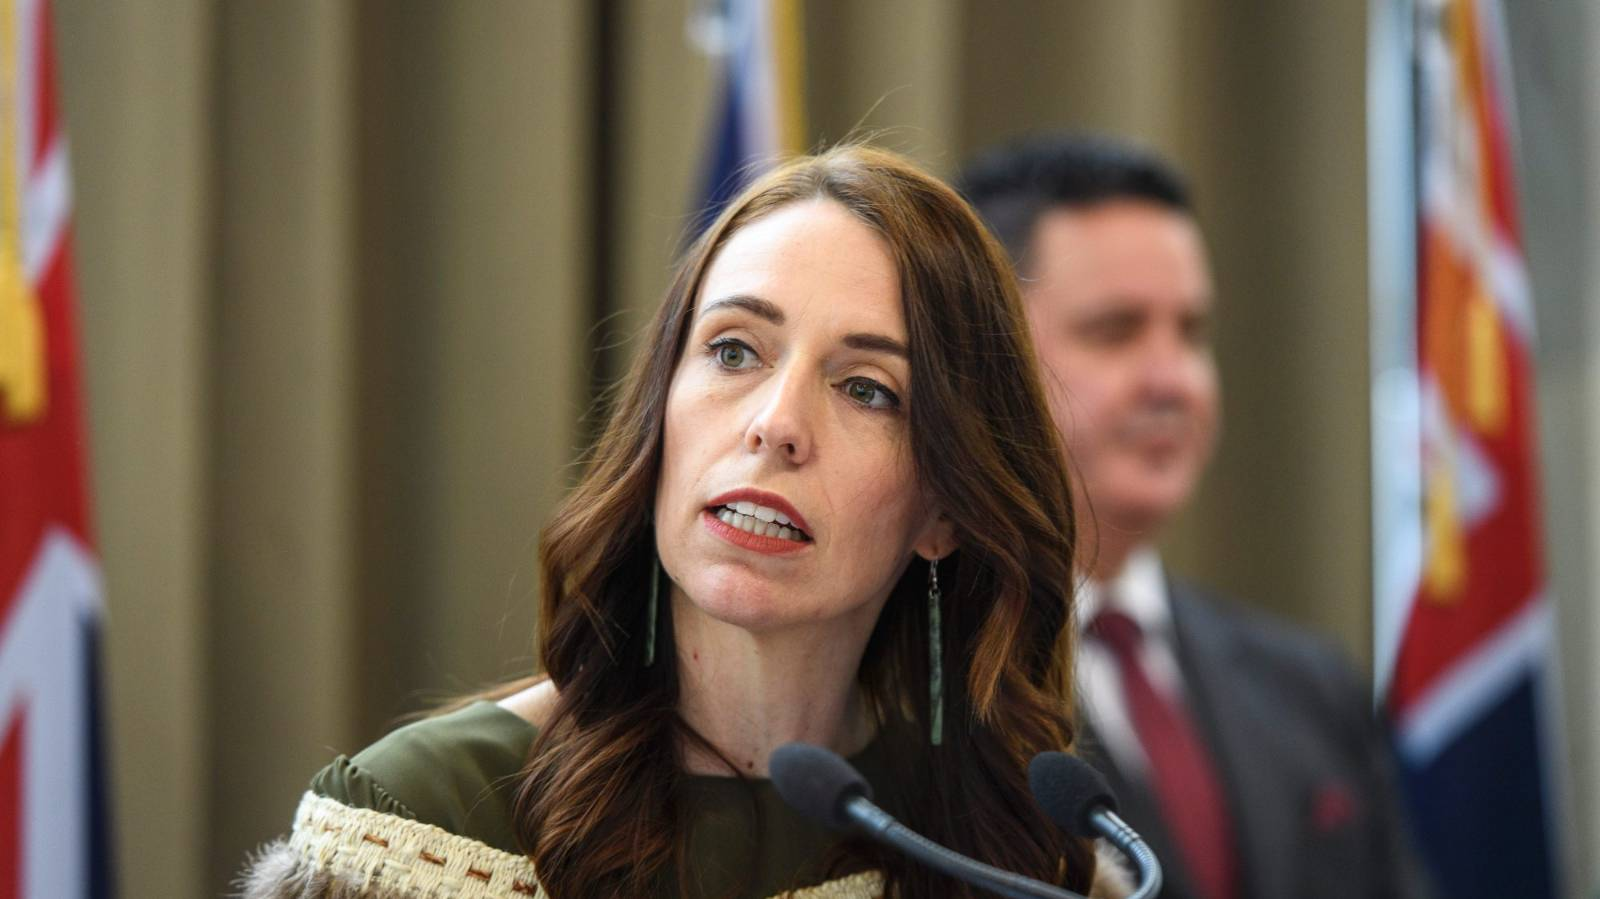 'Good on them' – Prime Minister Jacinda Ardern weighs in on Stuff apology to Māori